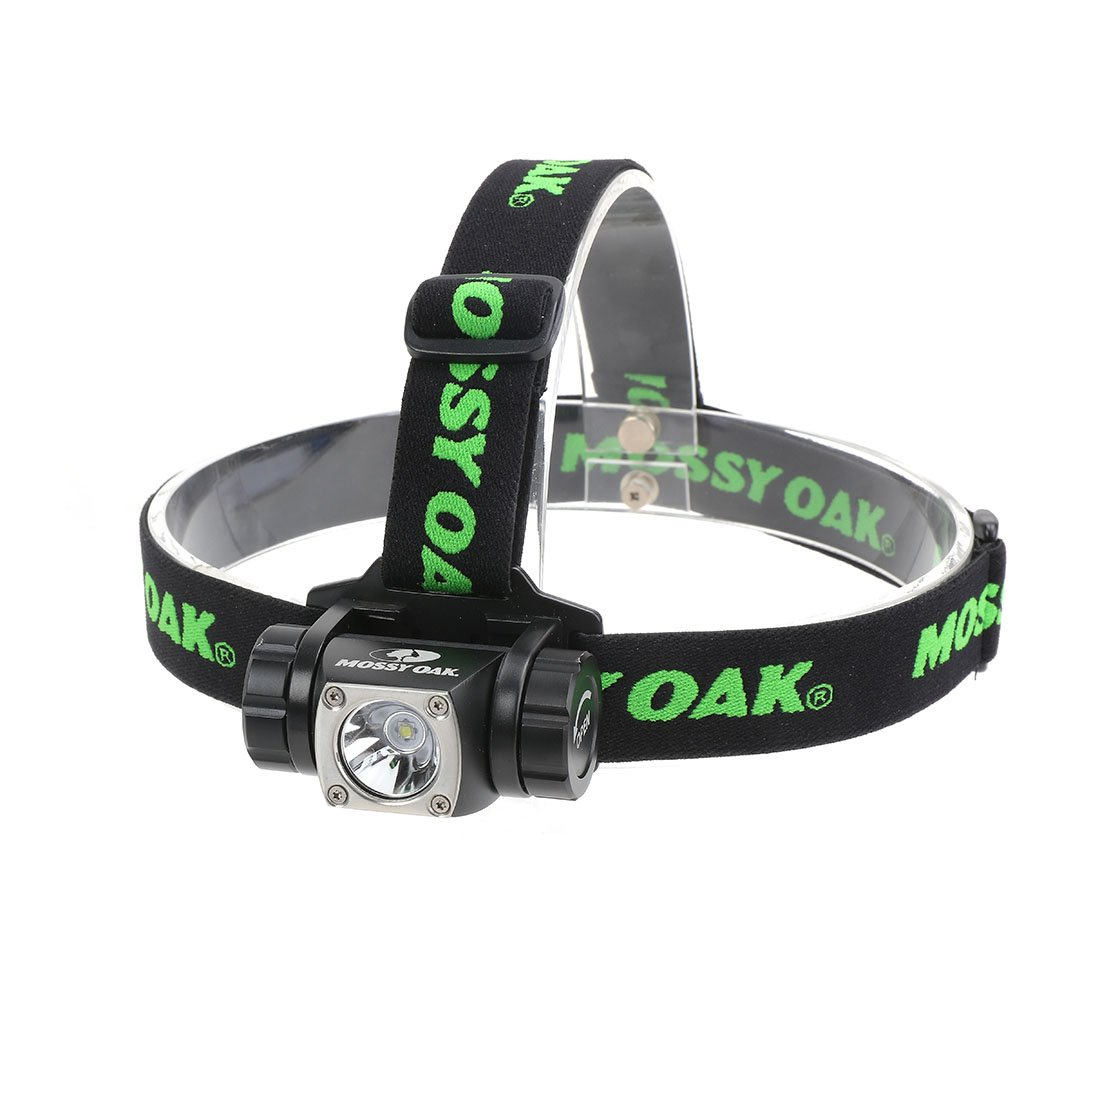 Mossy Oak LED Headlamp Flashlight Waterproof IP X8, 6 Modes Light Switch, 3 AAA Batteries Included